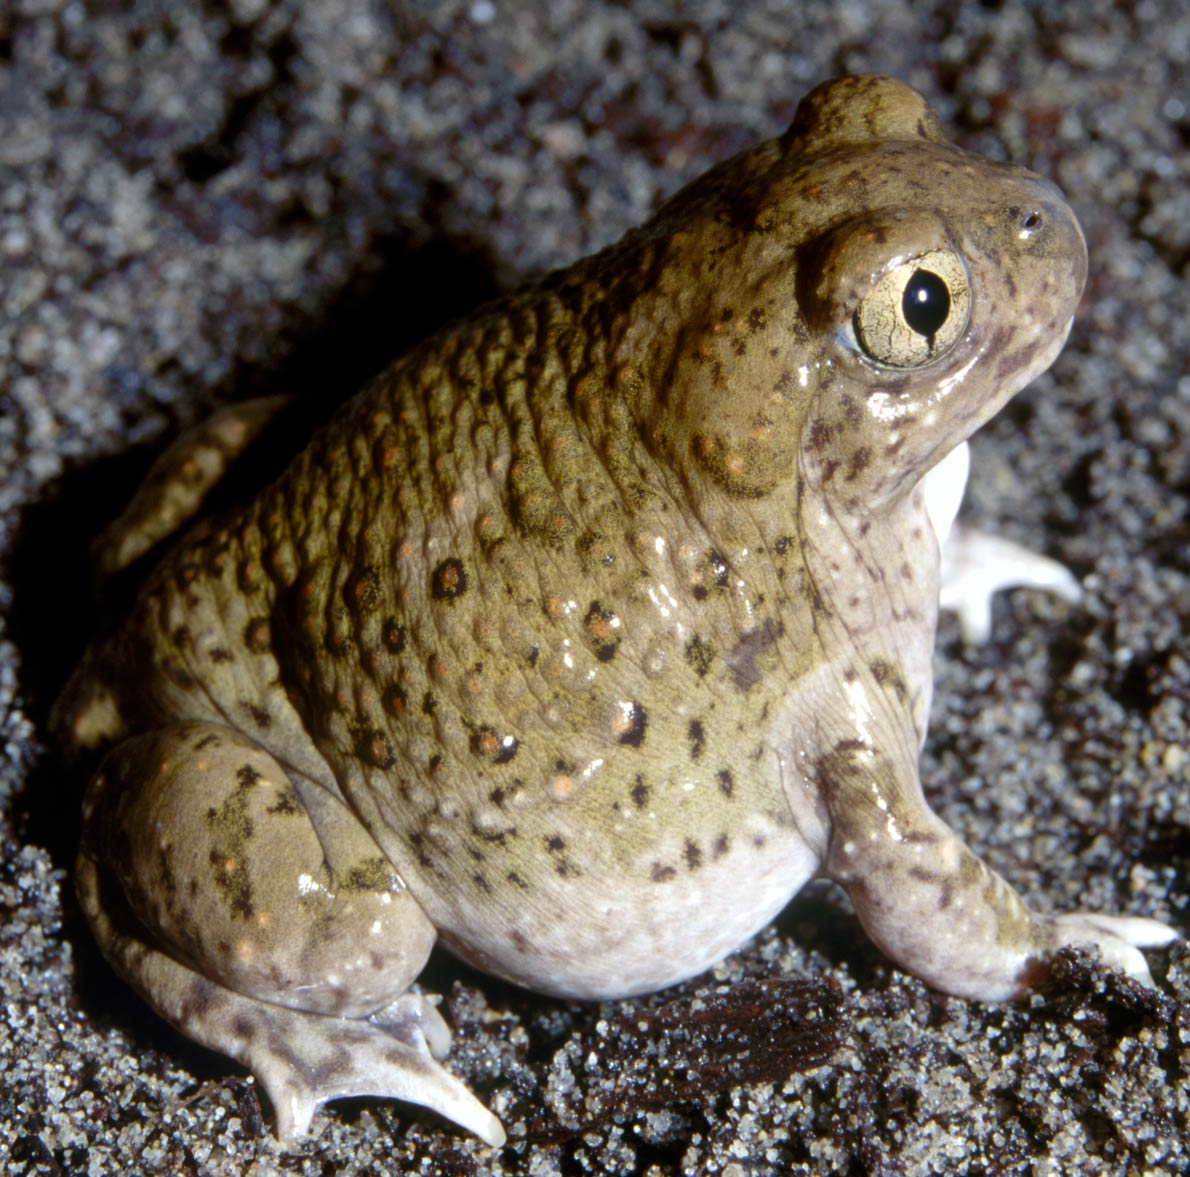 The spadefoot toad species Spea multiplicata can induce metamorphosis when it senses its pond drying up in order to escape as a juvenile toad.